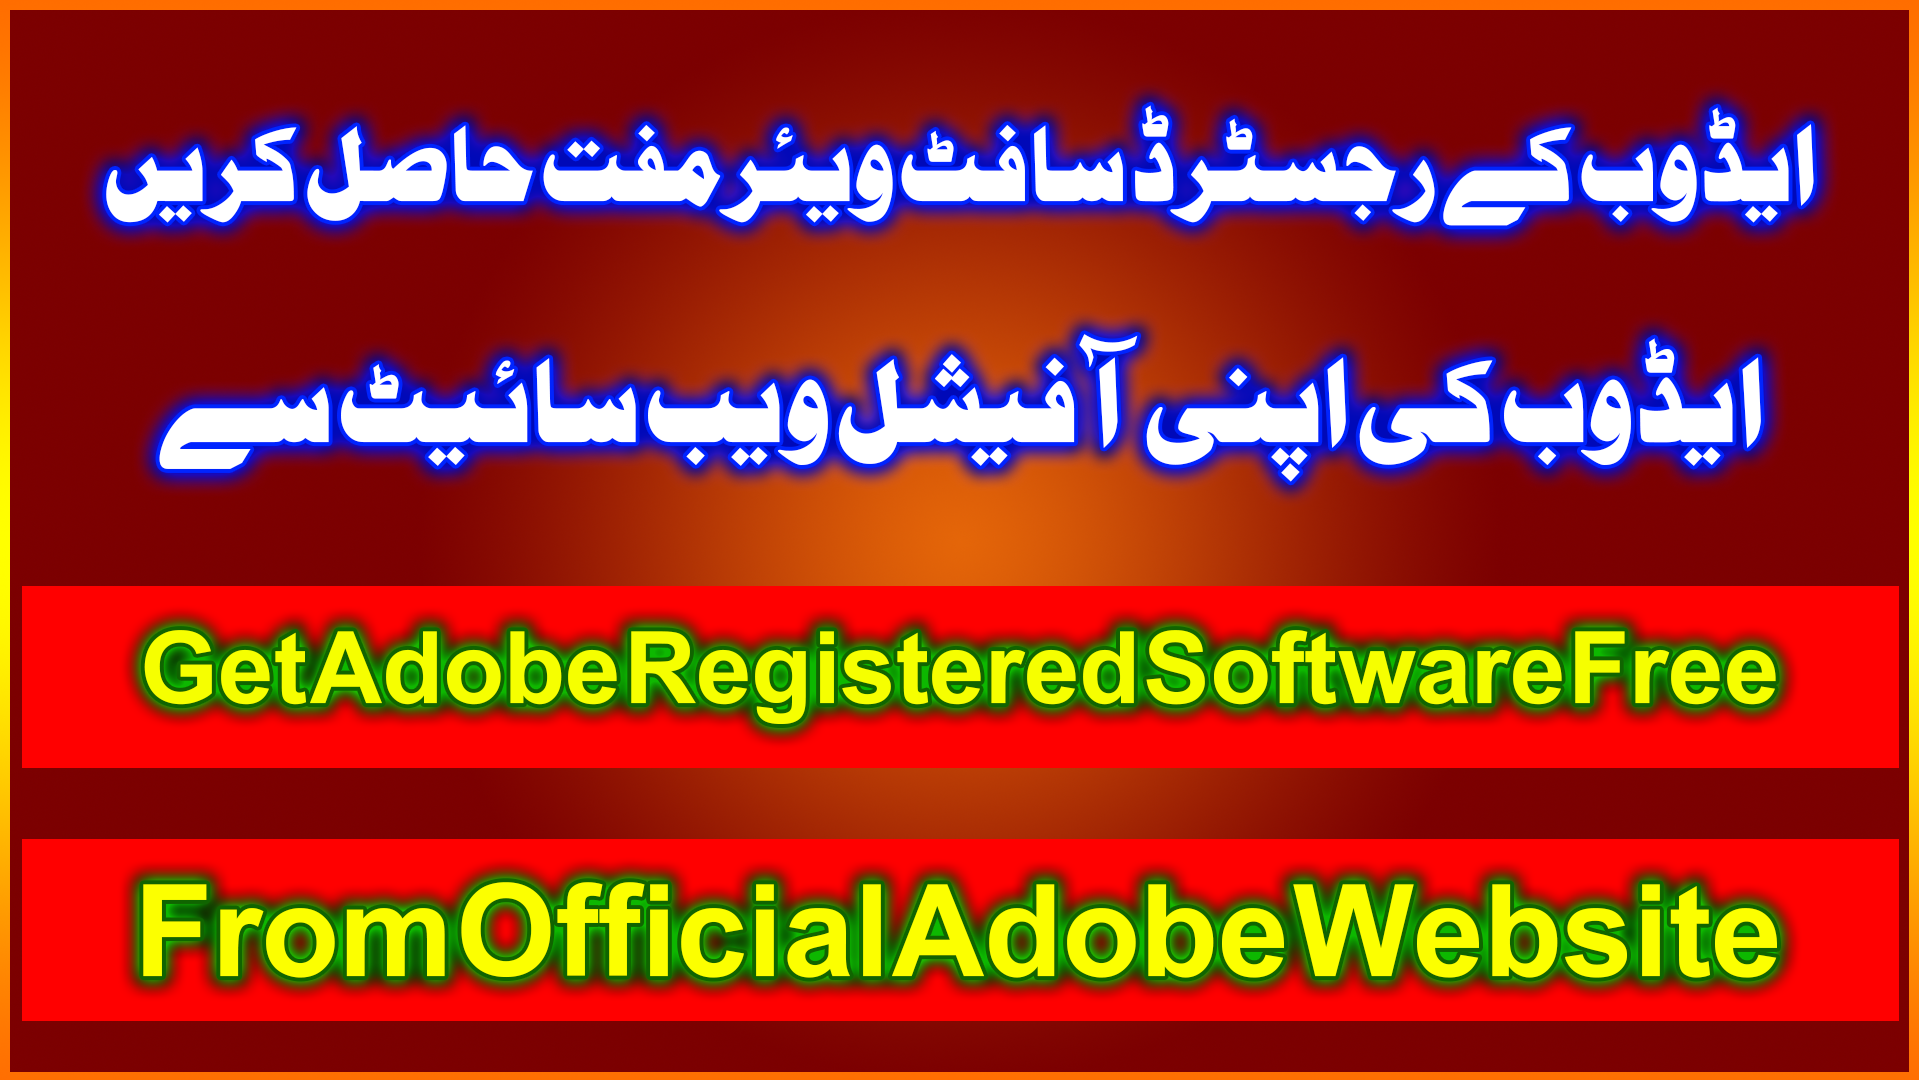 Get Adobe Software free and registered from  official adobe website ایڈوب کے سافٹ ویئر مفت حاصل کریں ایڈوب کی ویب سائیٹ سے ۔